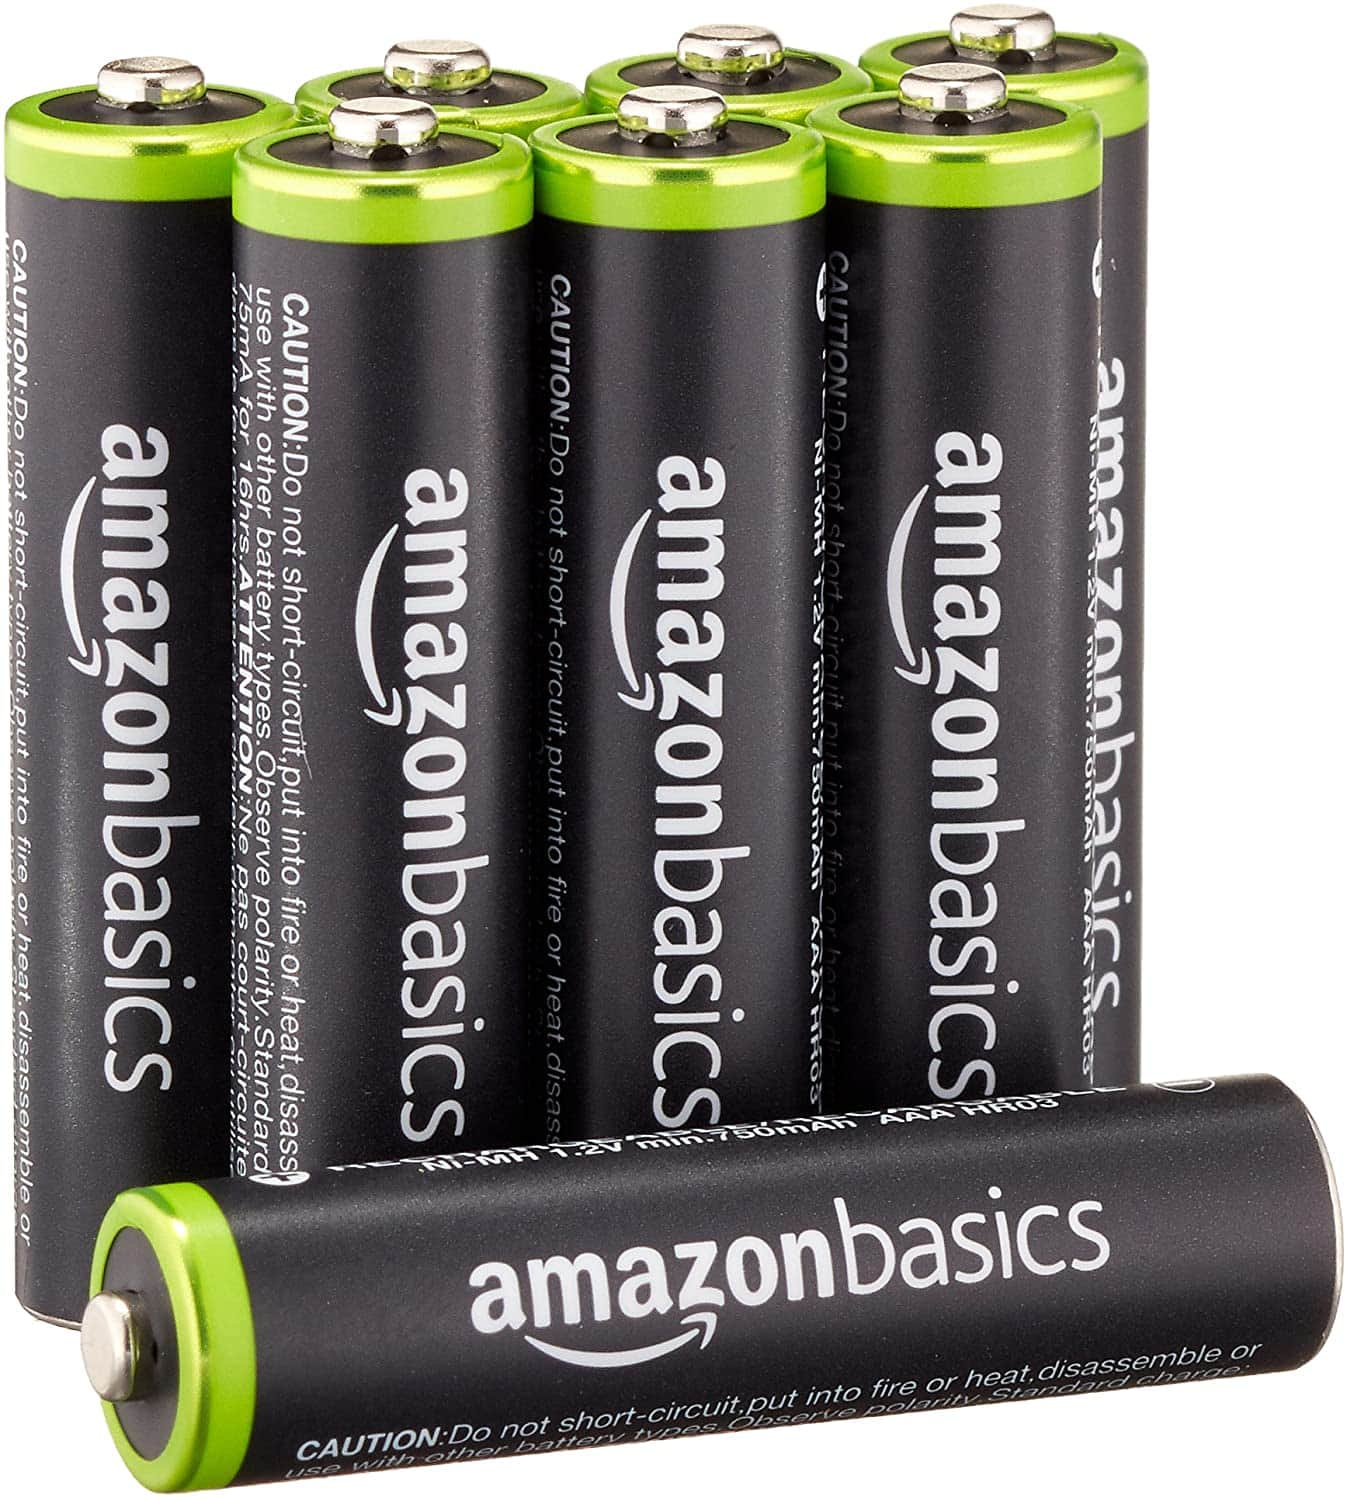 AmazonBasics AAA Rechargeable Batteries (800 mAh), Pre-charged - Pack of 8 for $9.74 w S&S + FS